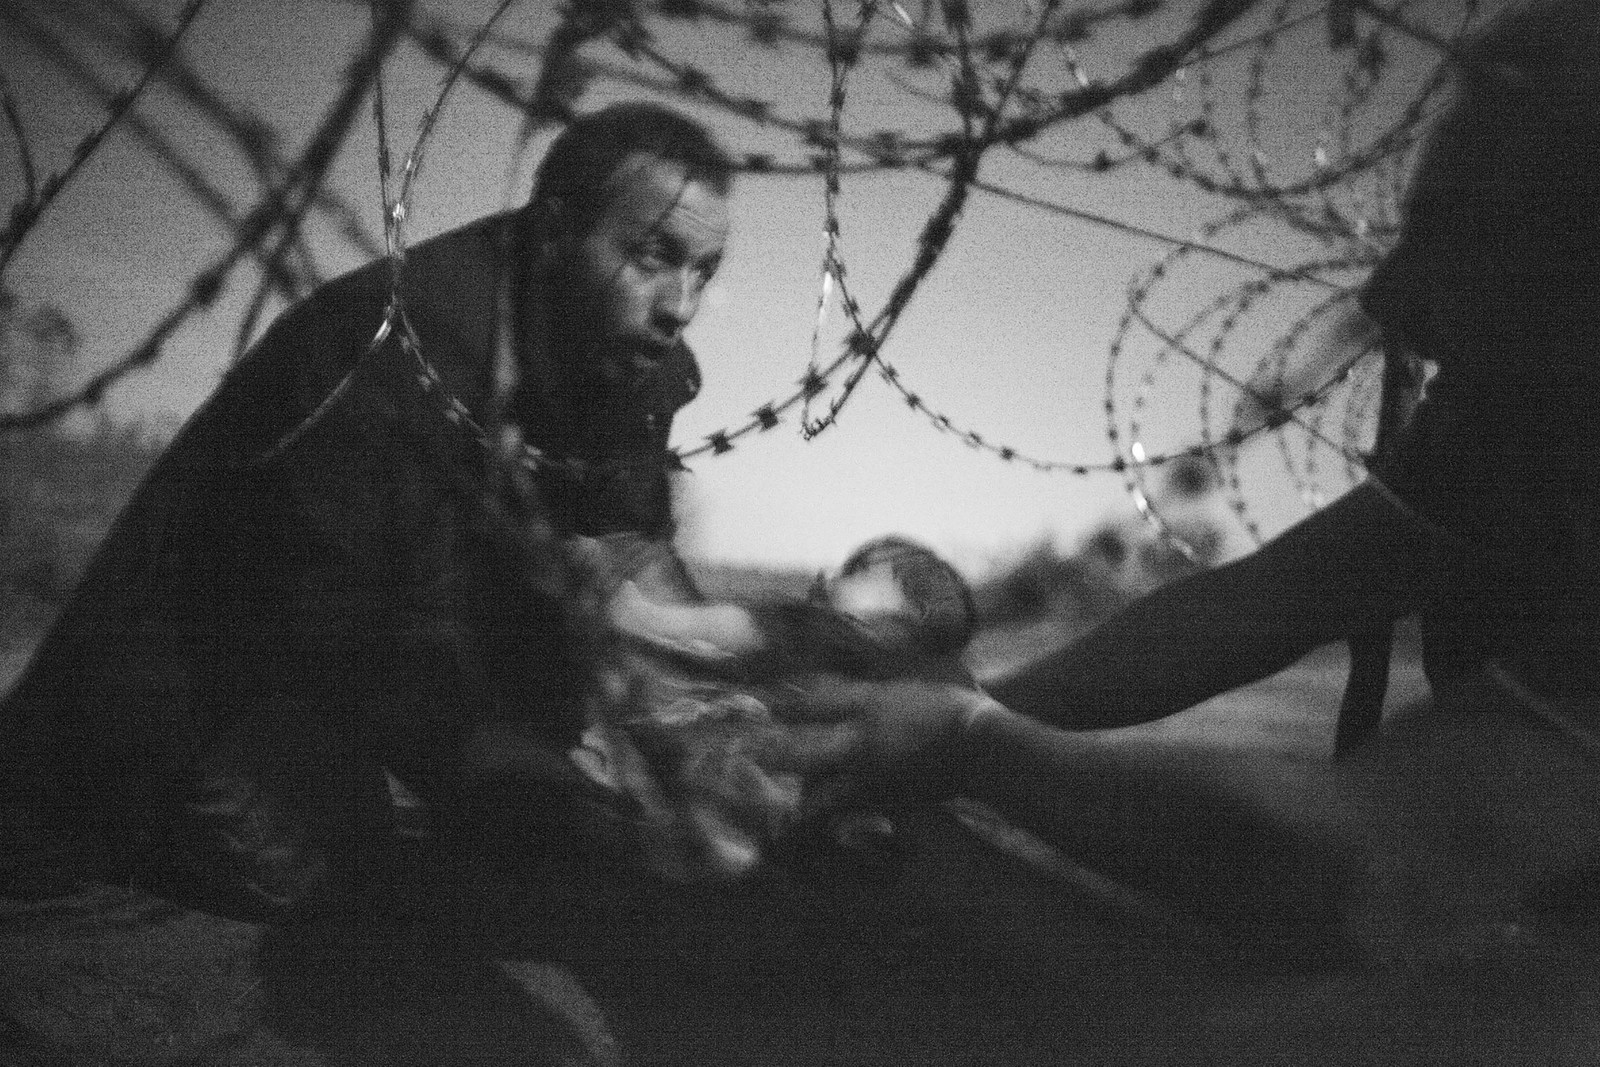 Hope for a New Life av Warren Richardson vant i kategoriene World Press Photo of the Year og Spot News.